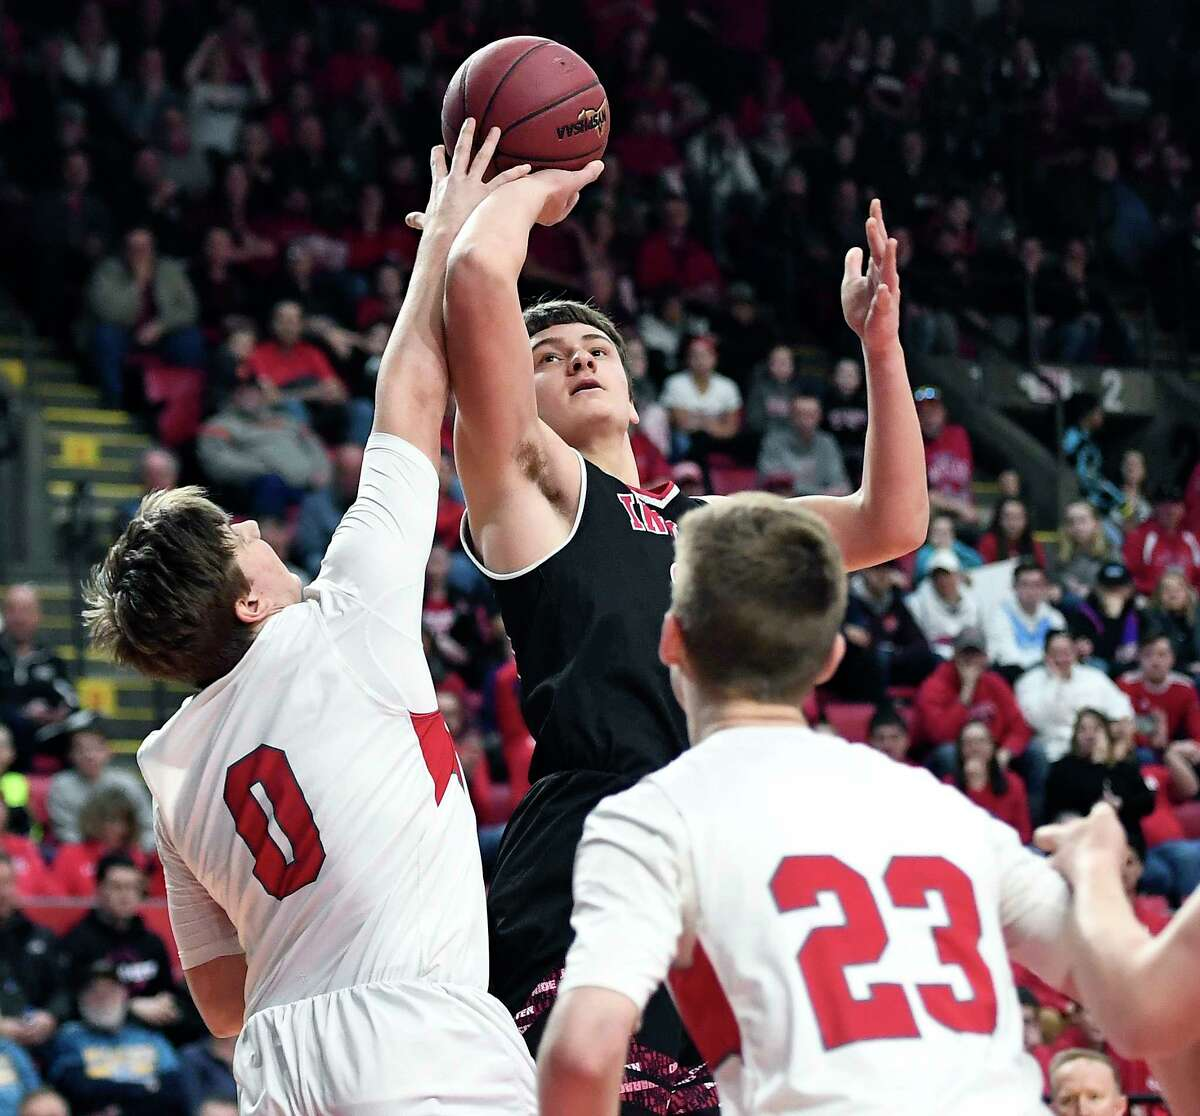 Glens Falls' Nick Danahy, top, is defended by Lowville's Chad Bach during the Class B final at the NYSPHSAA Boys Basketball Championships in Binghamton, N.Y., Saturday, March 16, 2019. Glens Falls won the Class B state title with a 75-74 overtime win over Lowville-III. (Adrian Kraus / Special to the Times Union)